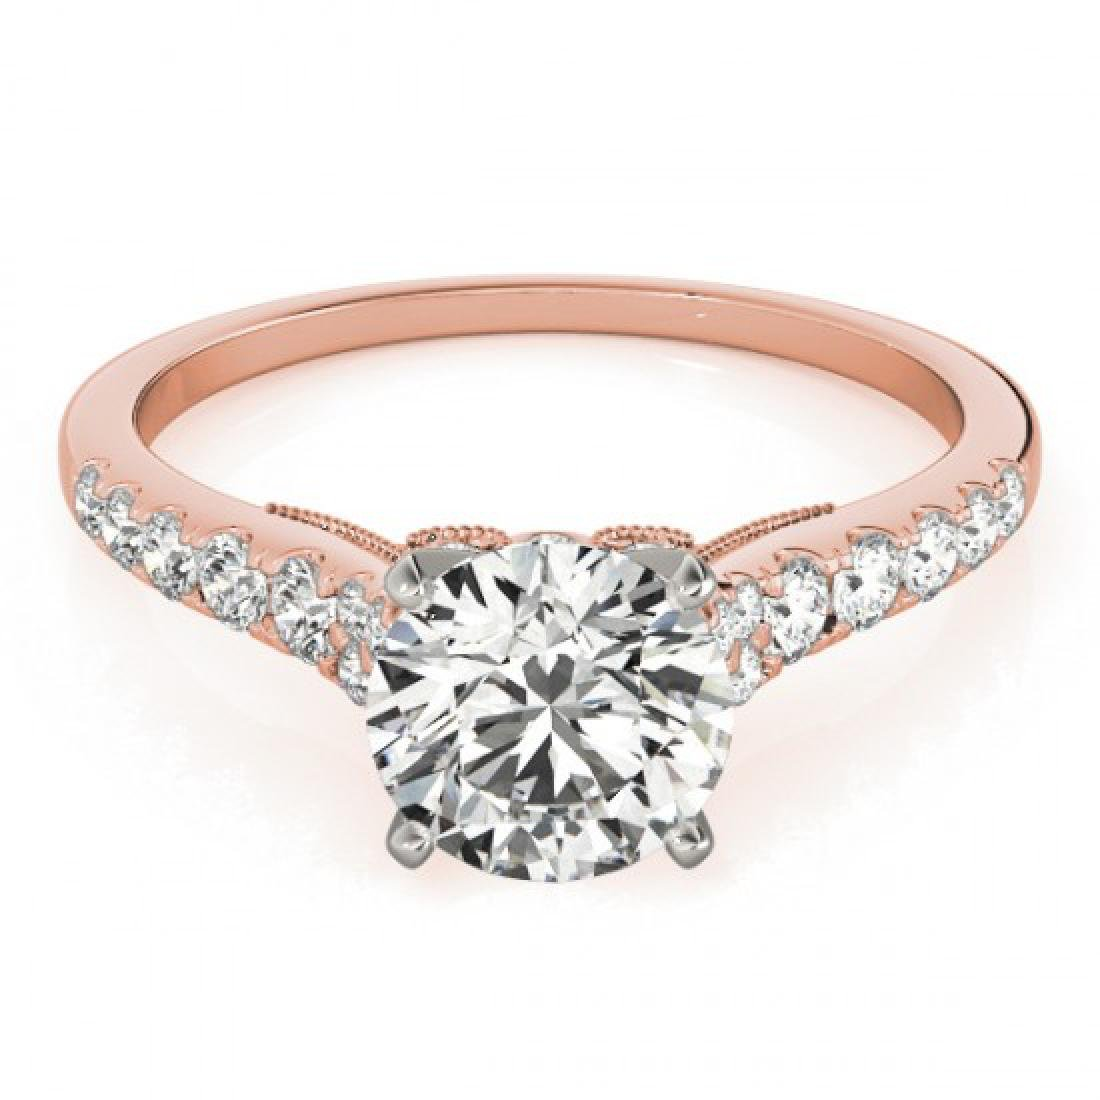 0.92 CTW Certified VS/SI Diamond Solitaire Ring 14K